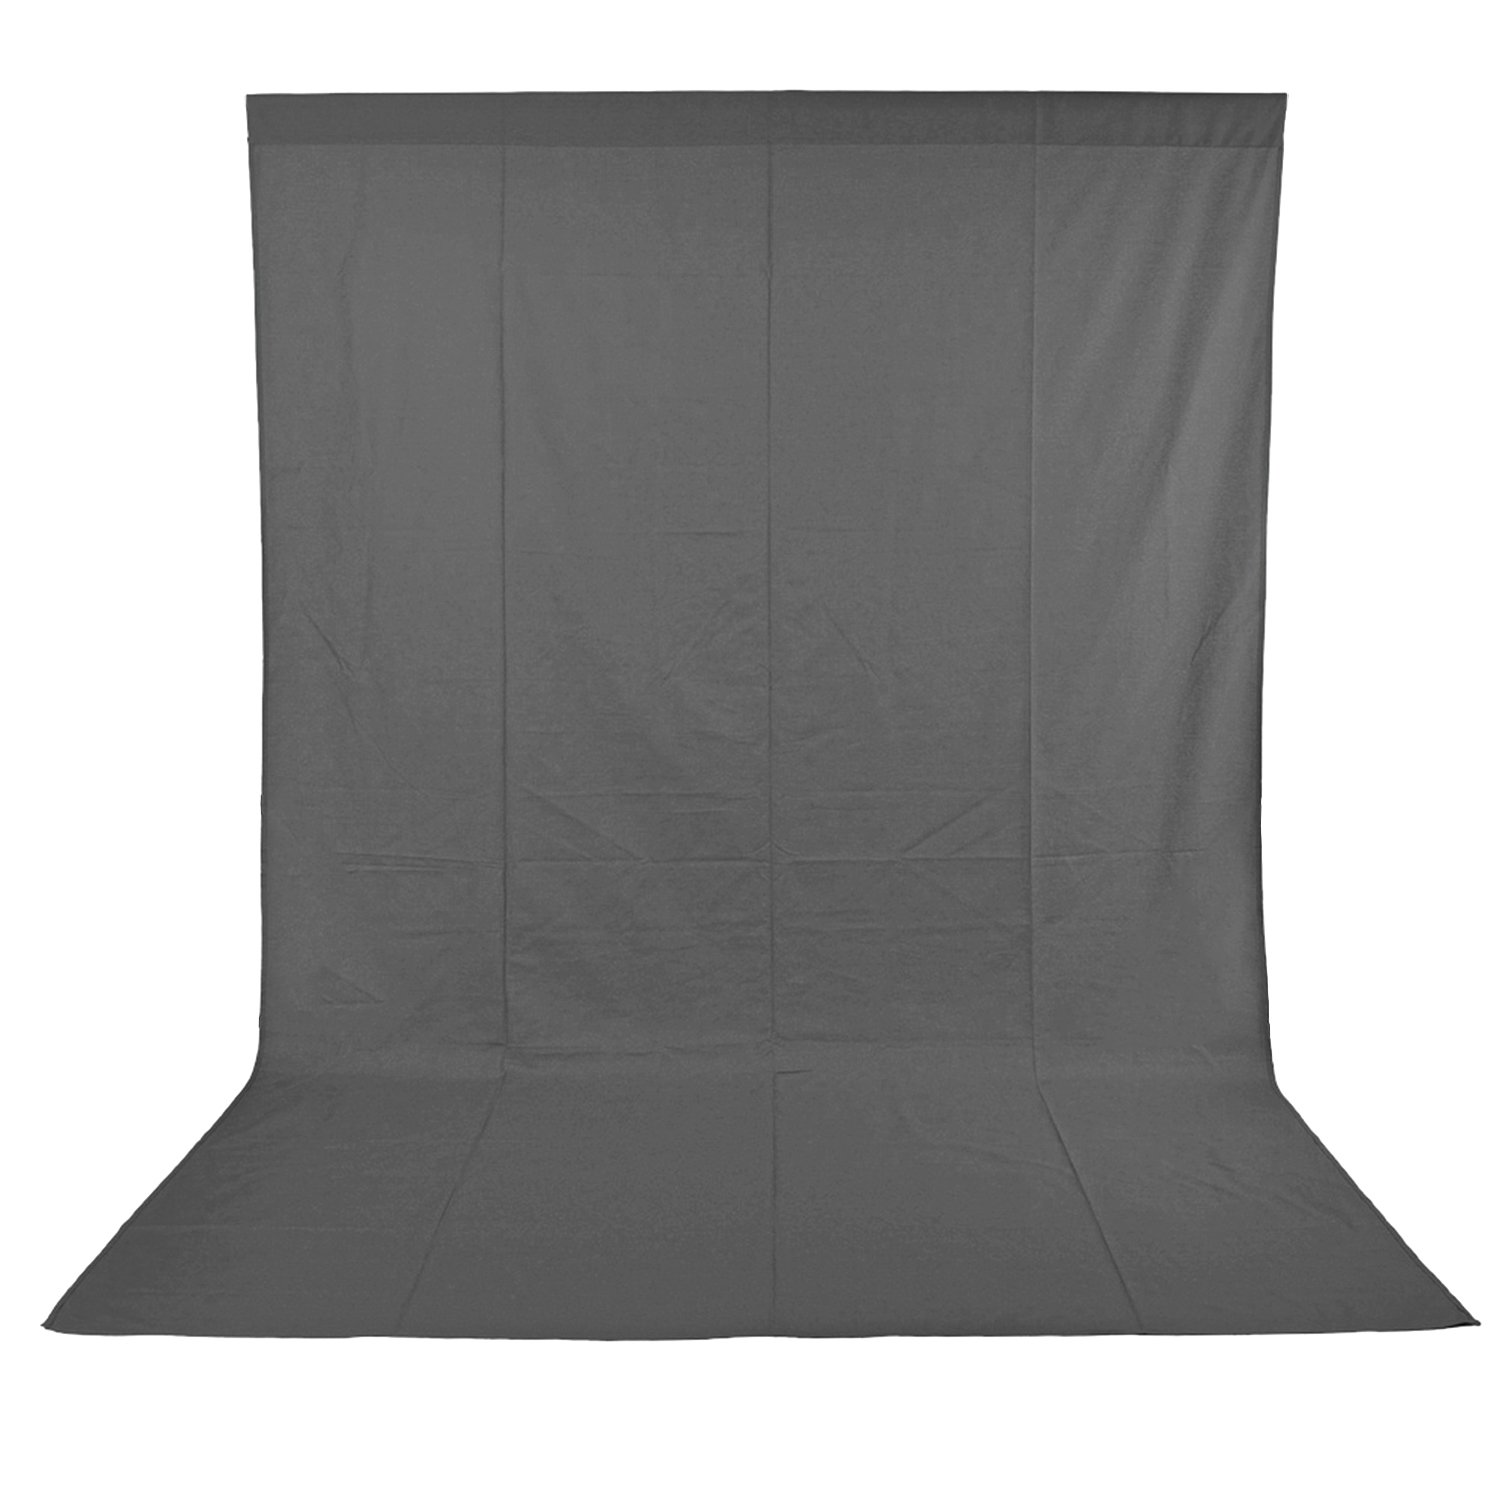 Neewer 10 x 12FT / 3 x 3.6M PRO Photo Studio 100% Pure Muslin Collapsible Backdrop Background for Photography,Video and Television (Background Only) - Grey